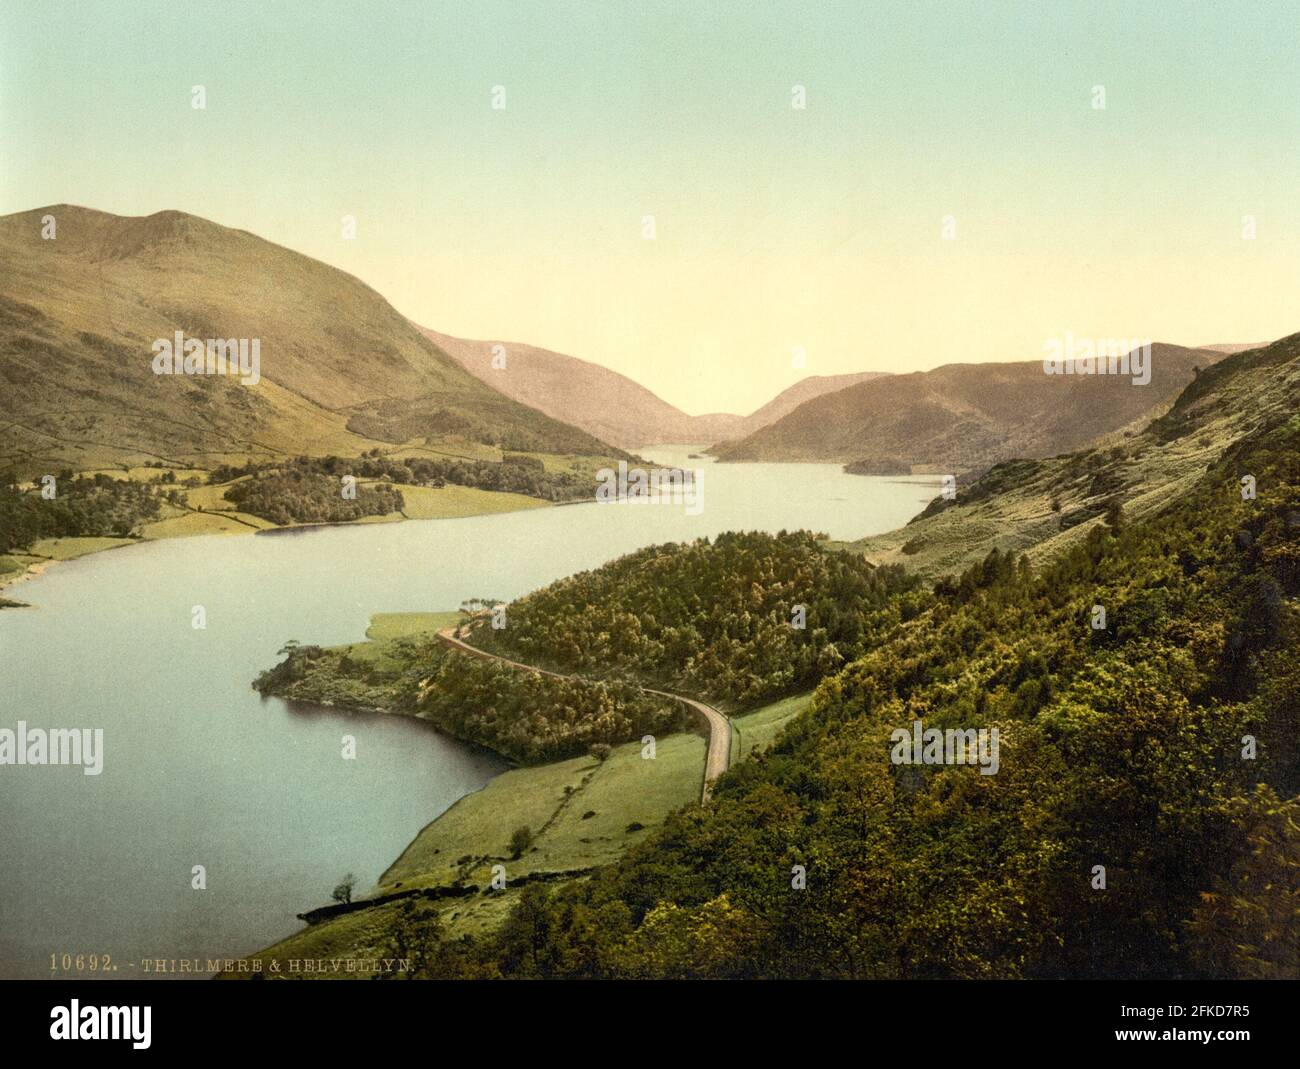 Thirlmere and Hellvellyn in The Lake District, Cumbria circa 1890-1900 Stock Photo